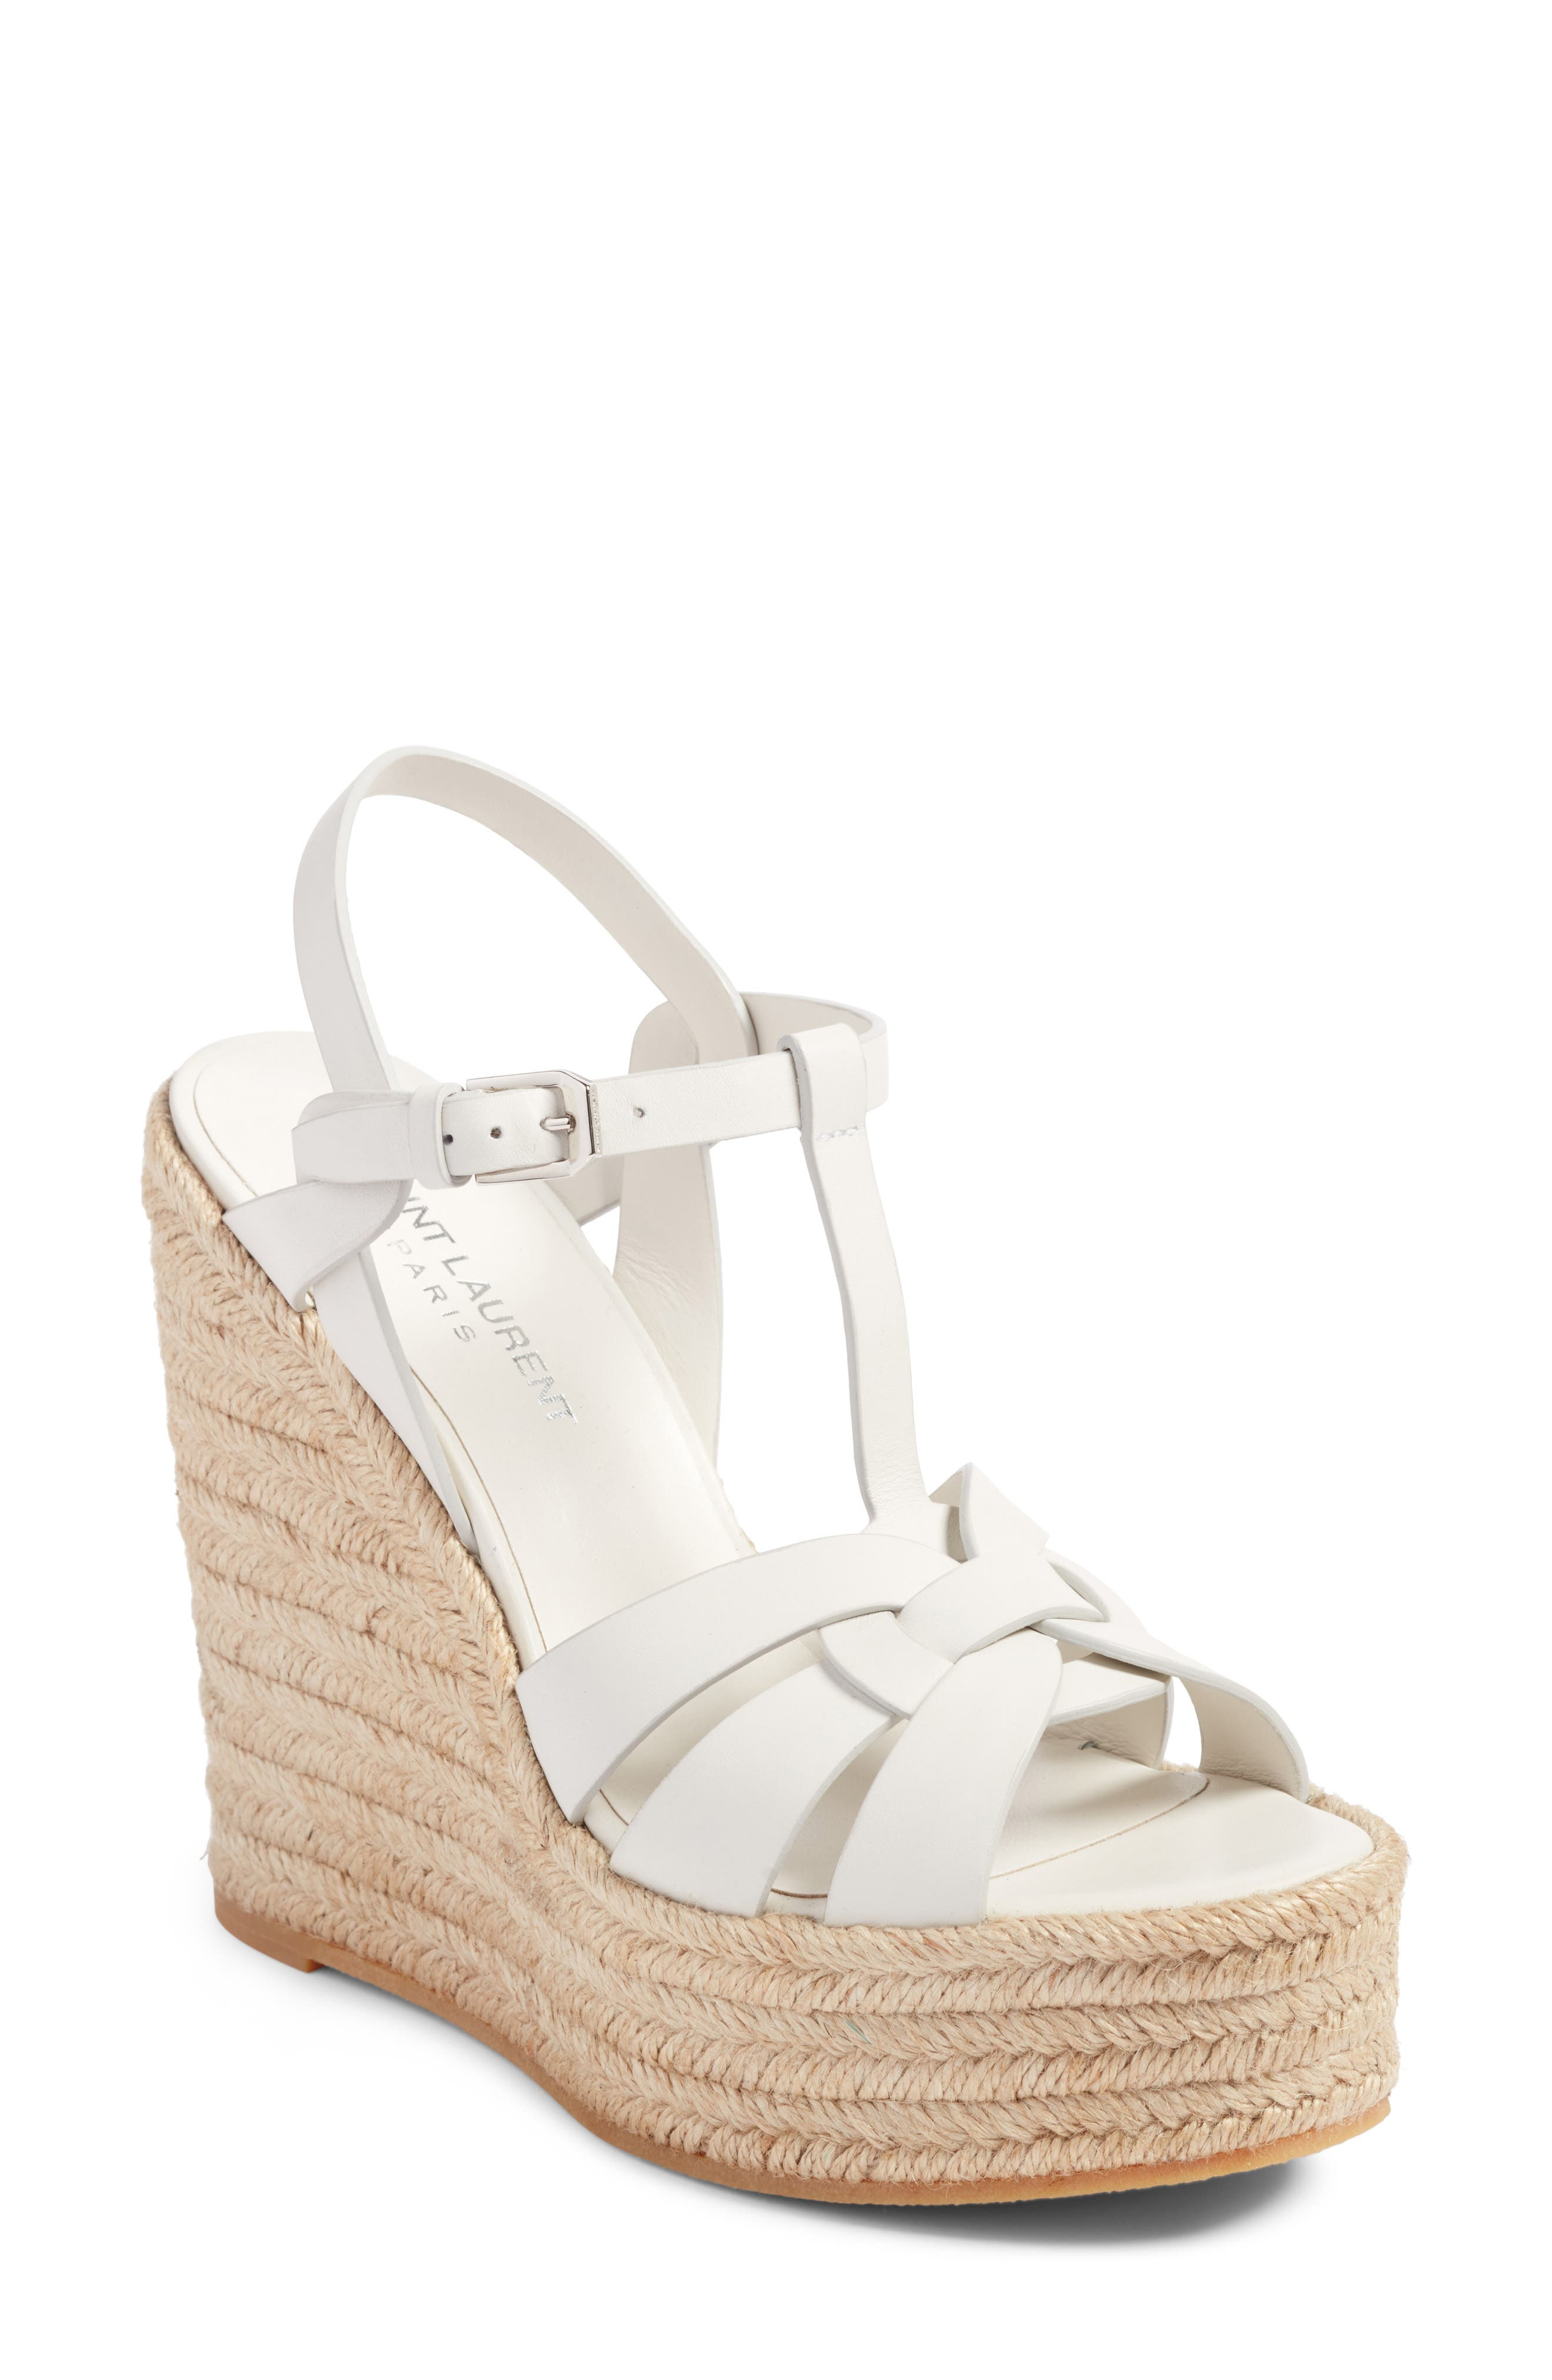 Tribute Espadrille Wedge,                         Main,                         color, White Leather